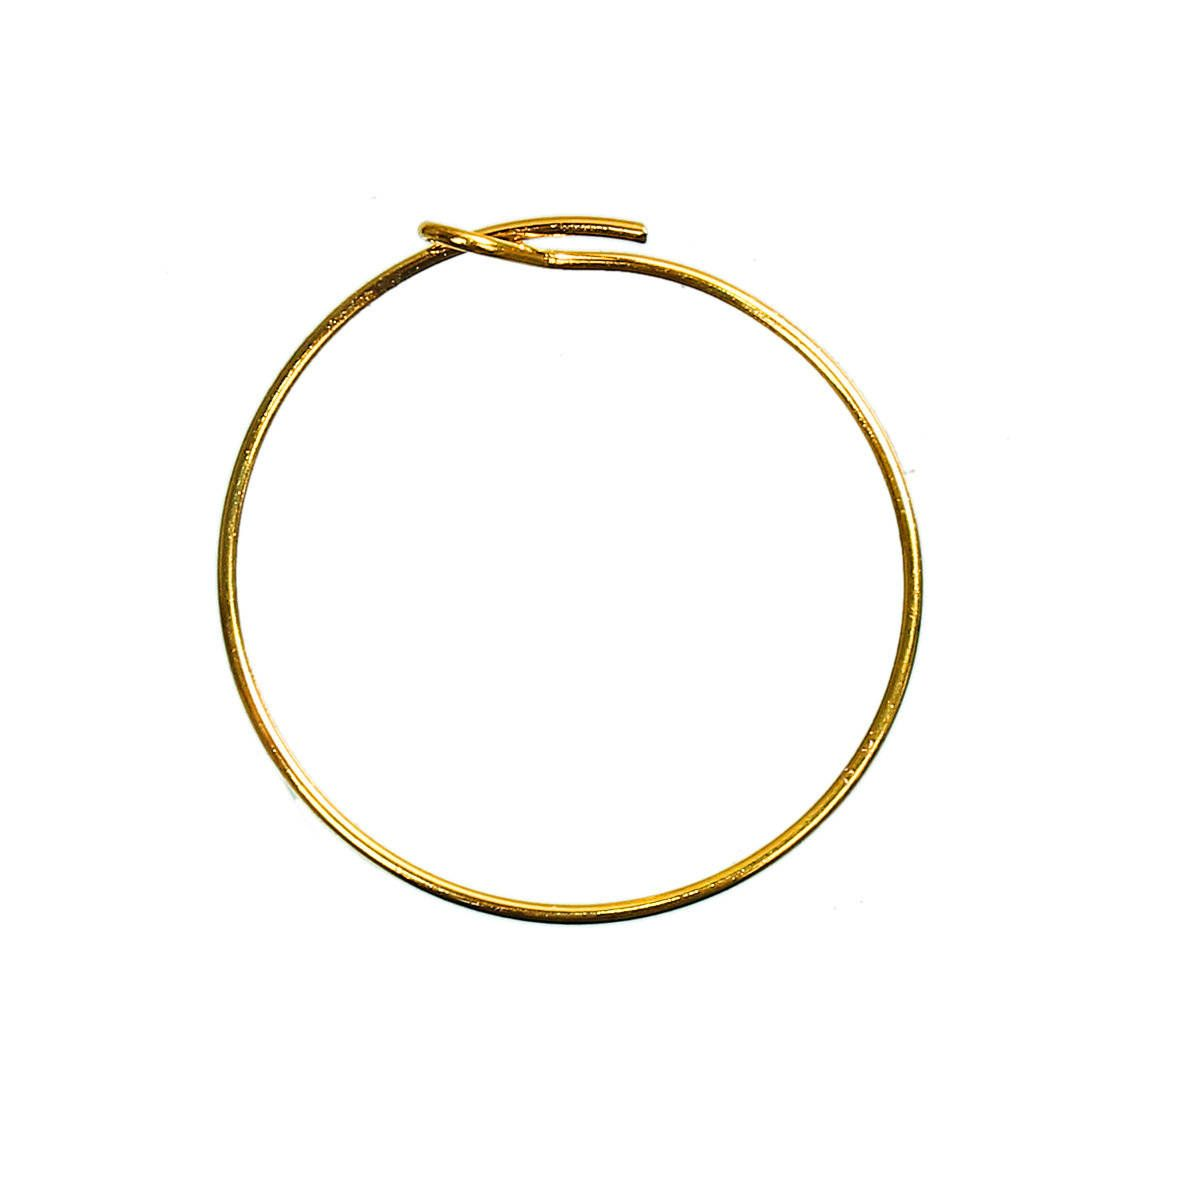 Wire Hoops - 25 mm Straight End Wire Rings - 25 Gold Hoops - Wine ...